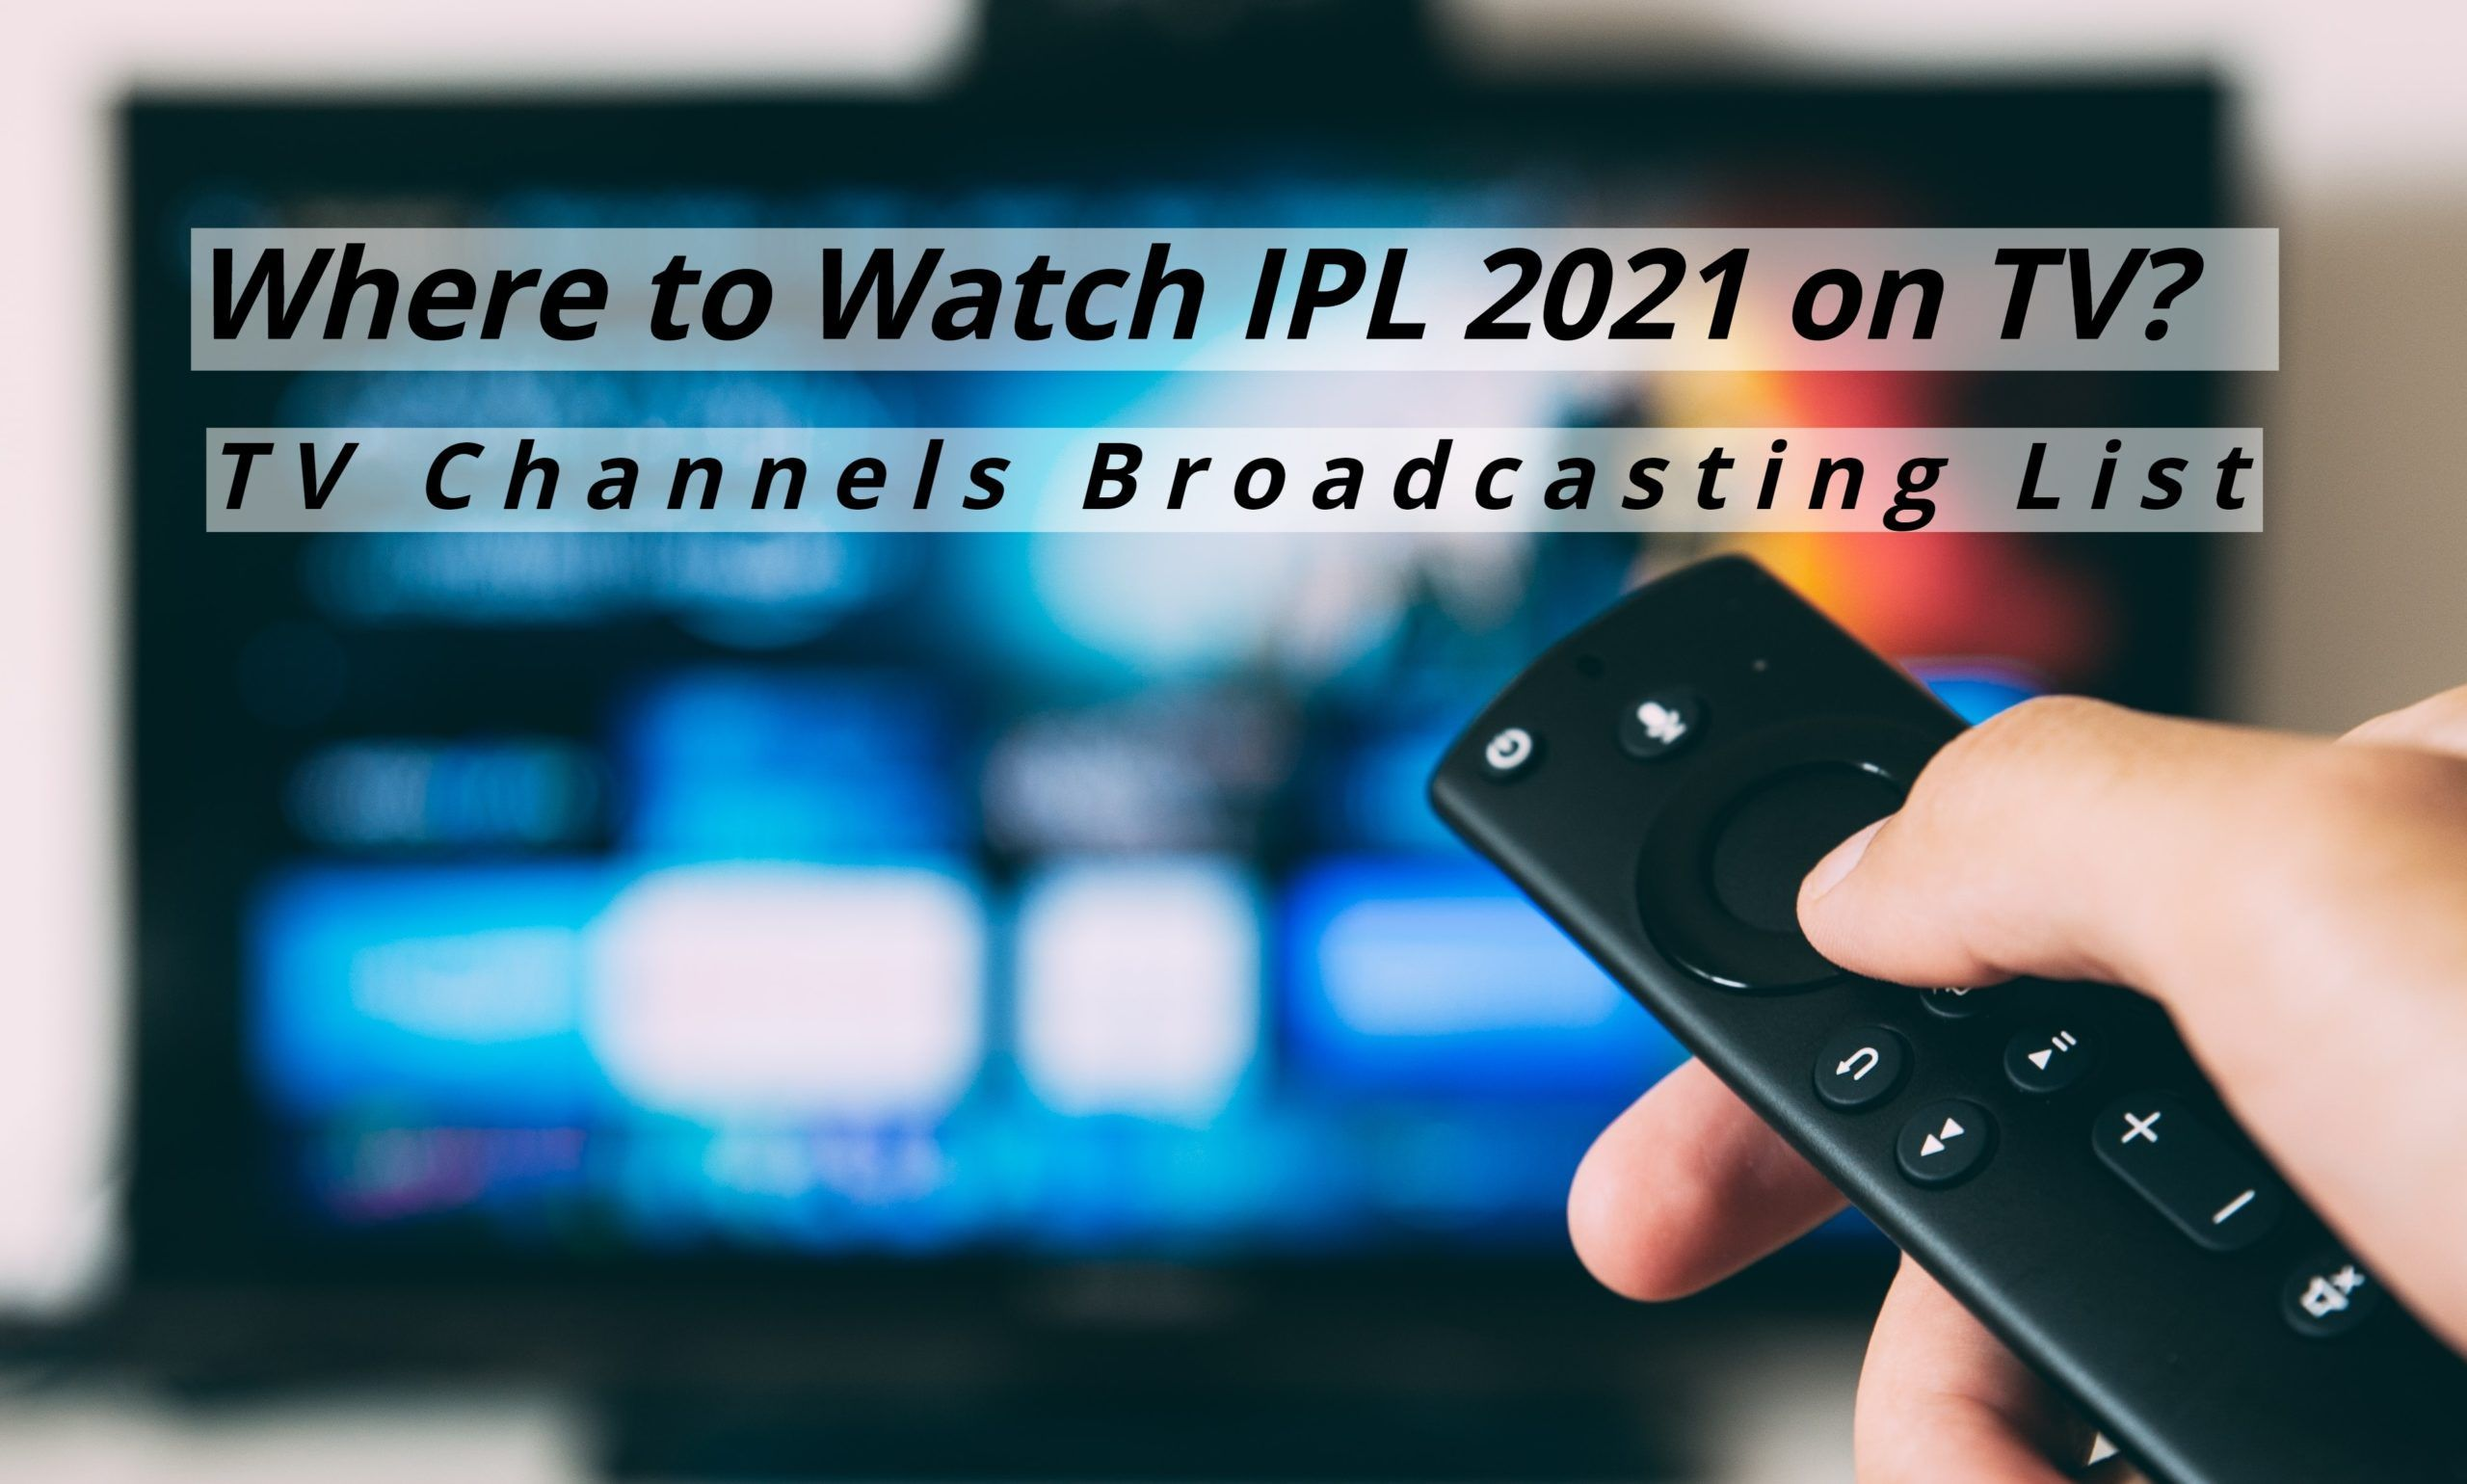 IPL TV Channels Broadcasting List – Where to Watch IPL 2021 Live Tv